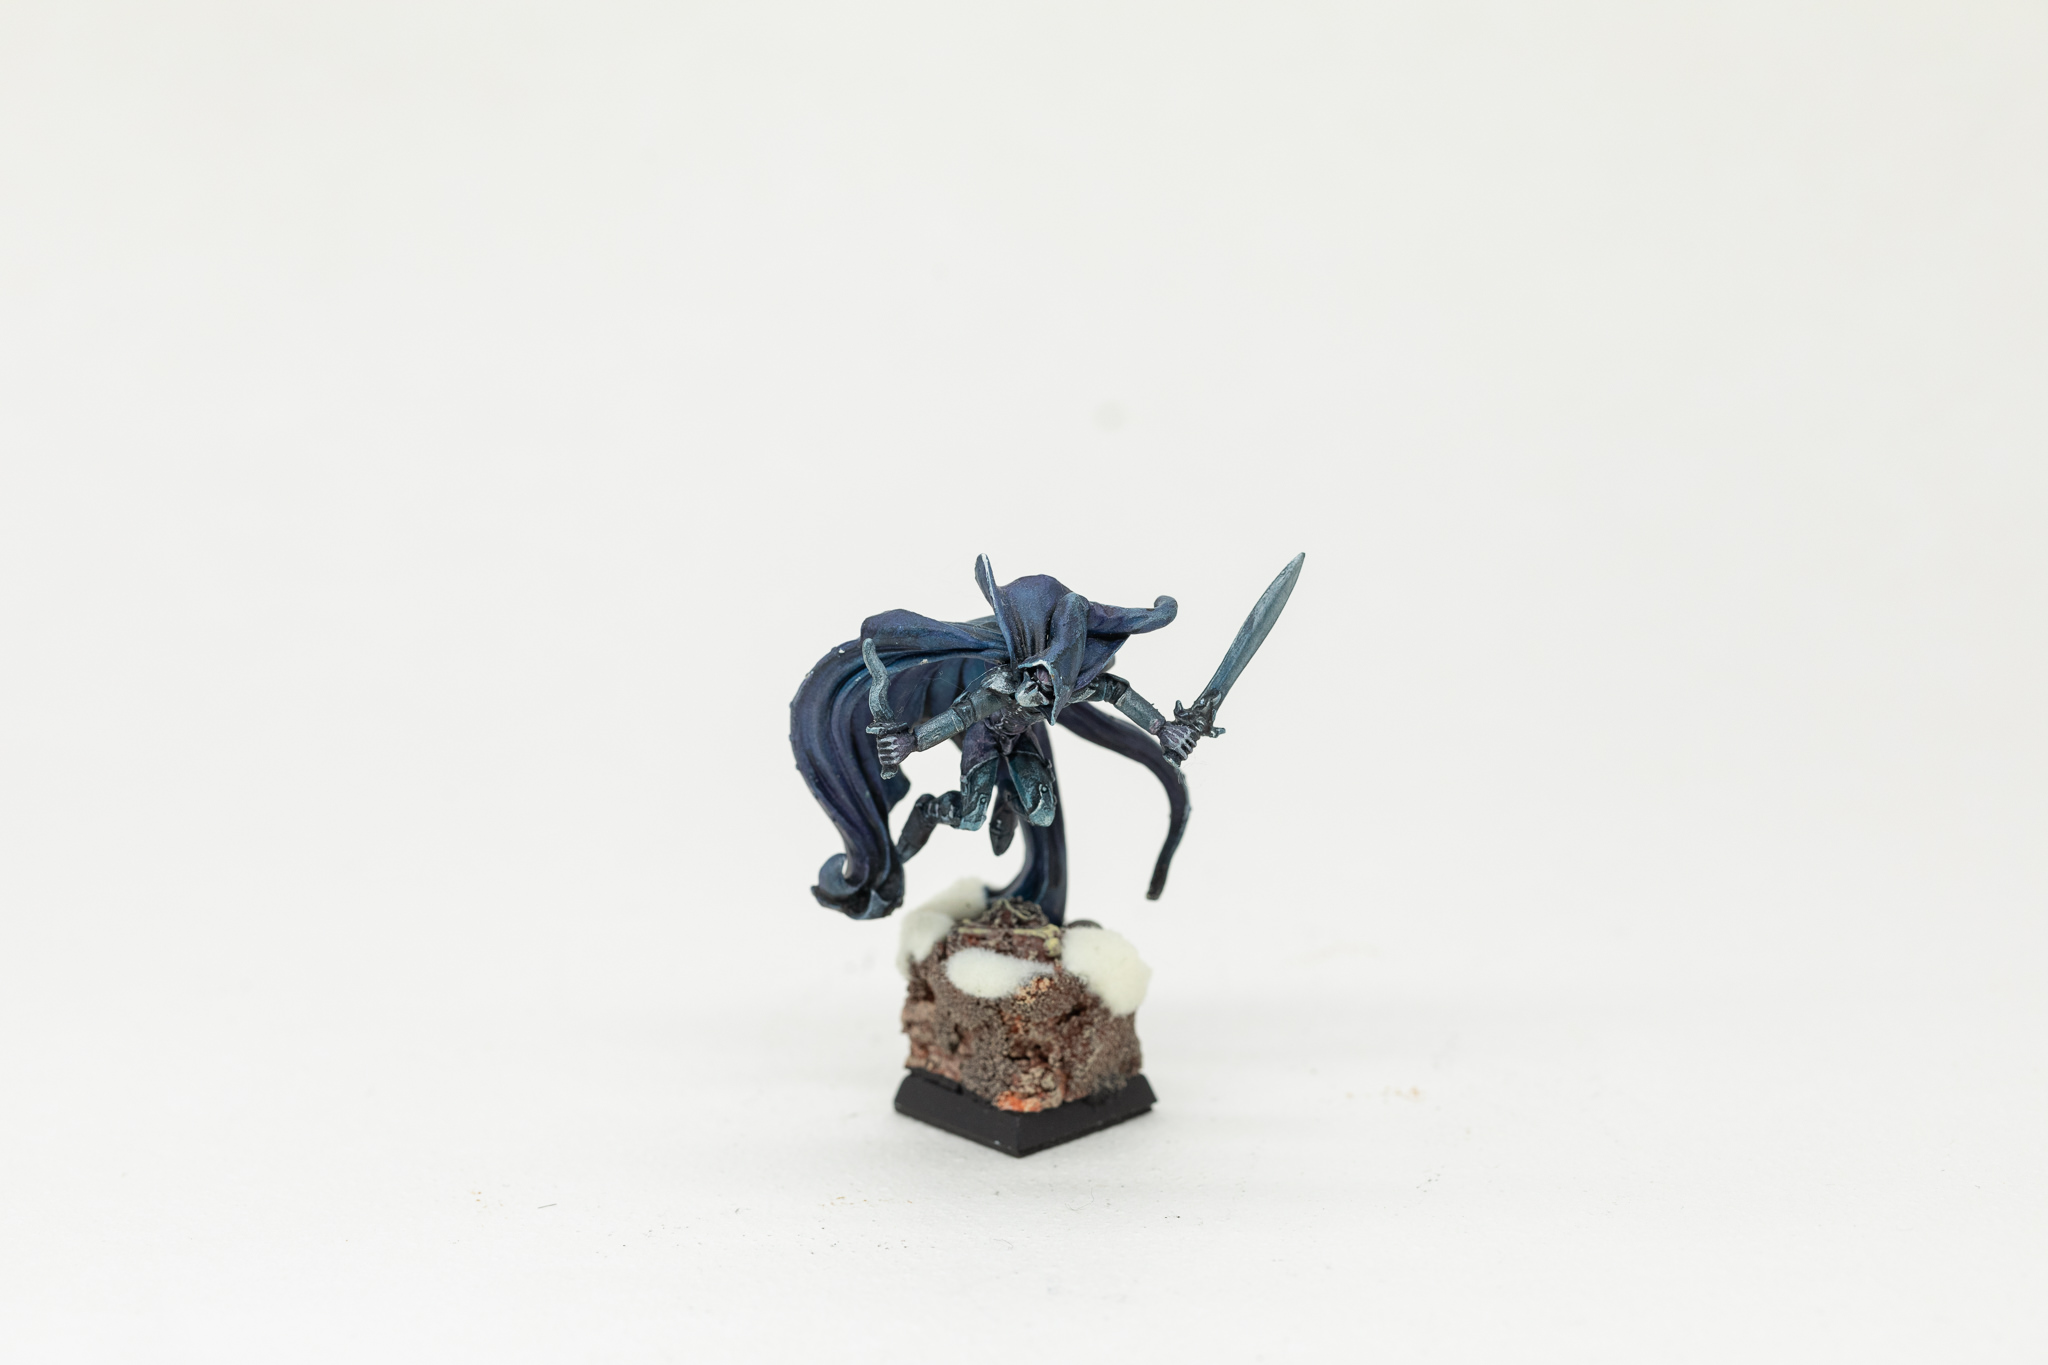 vente-figurines-elfesnoirs0003.jpg